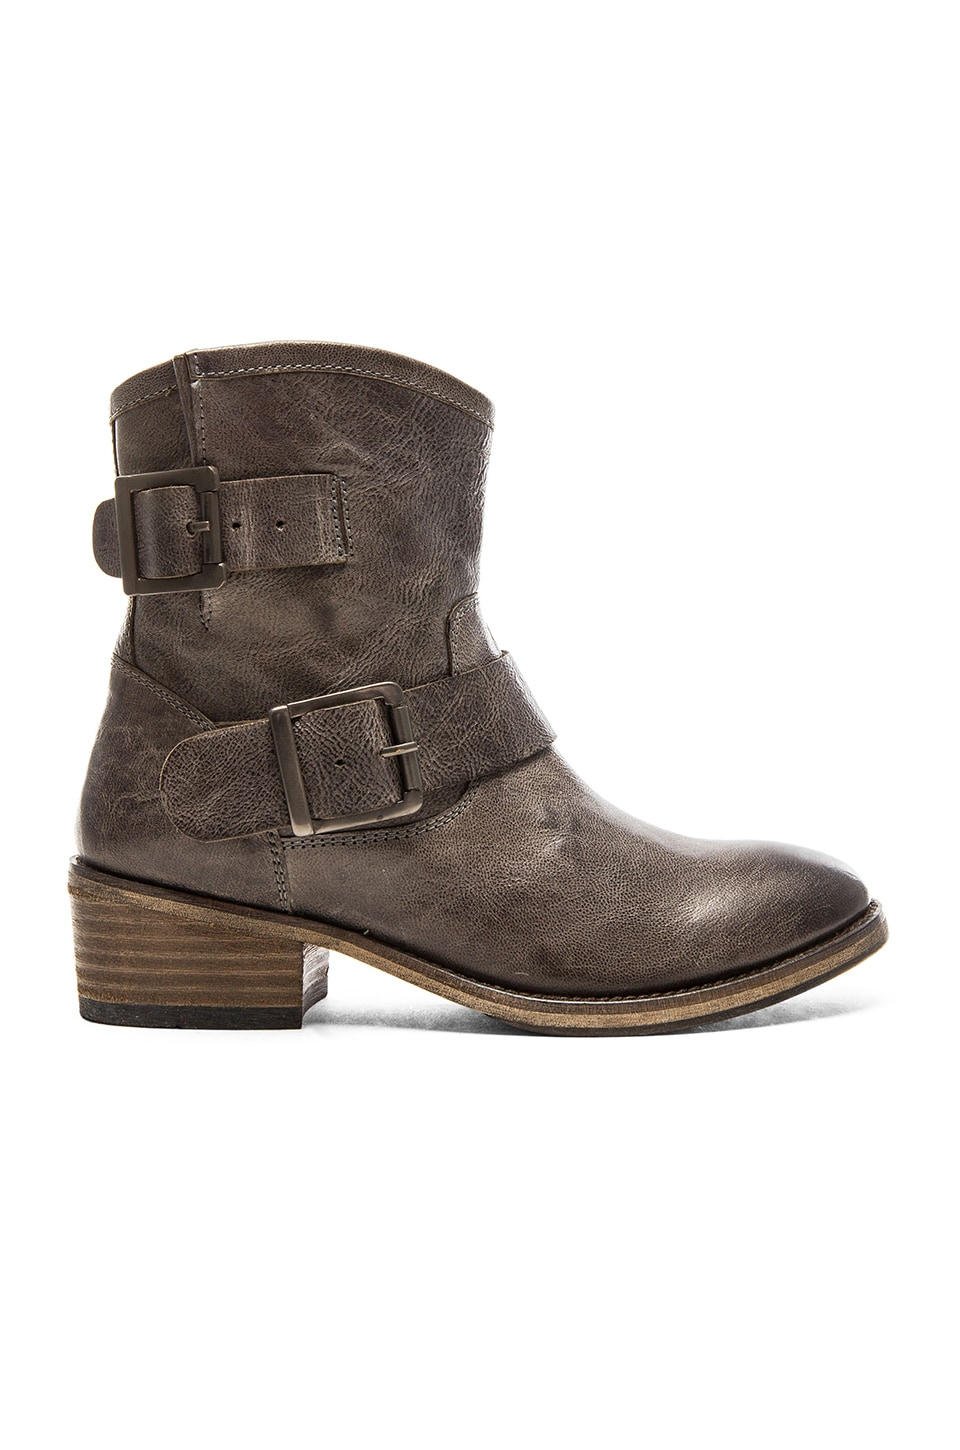 Seychelles Castanets Moto Boot in Grey